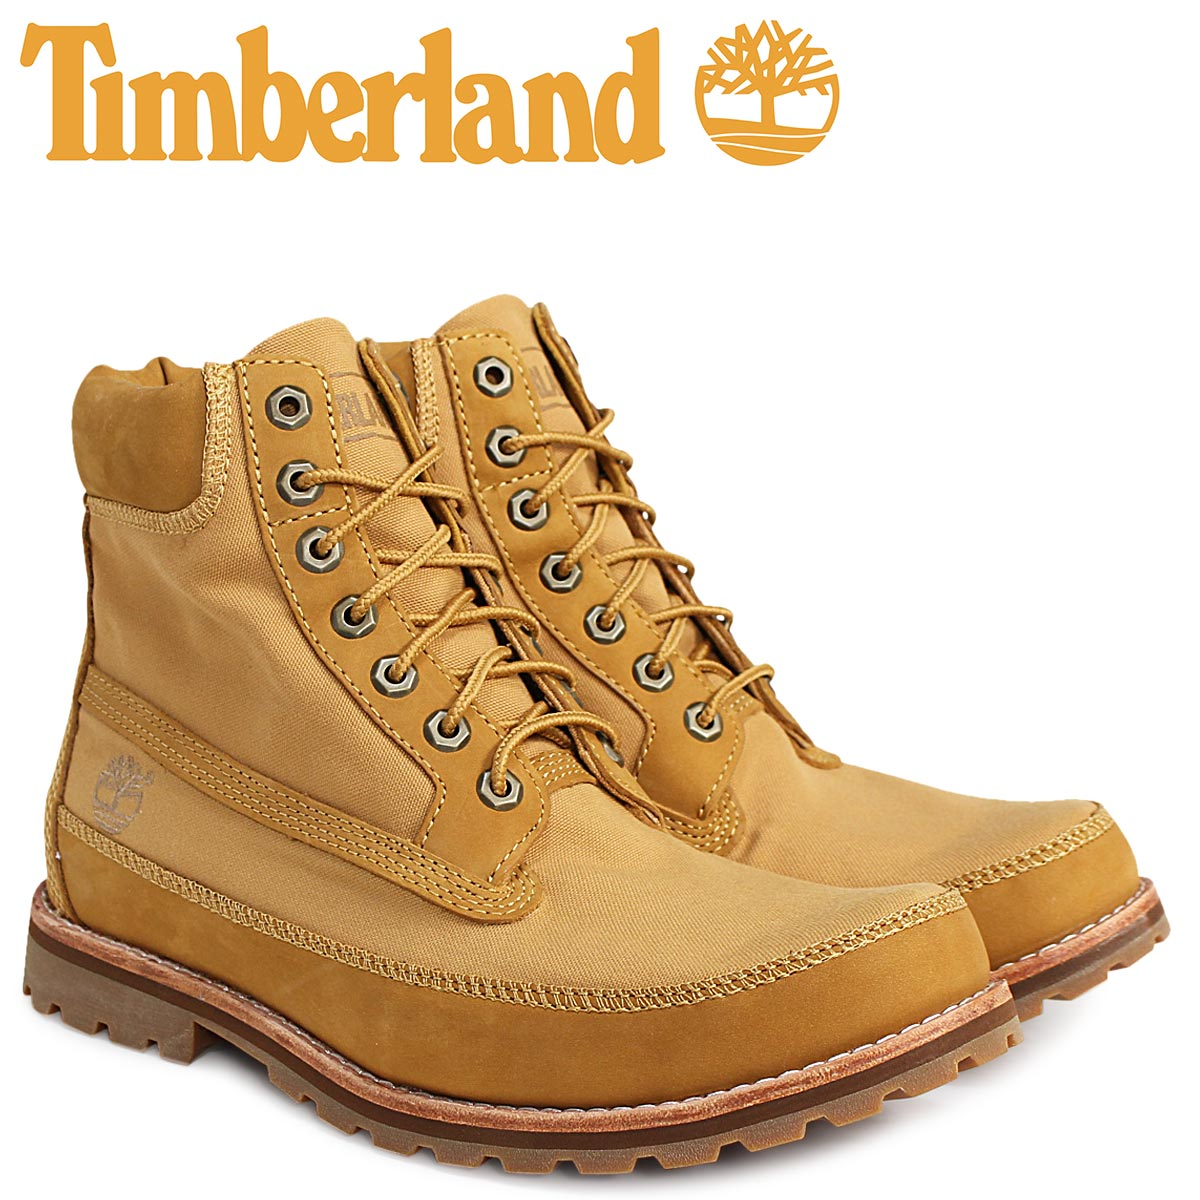 b277d9f4c1c24 ... introduced in 1973, fully waterproof boots, since, from a relaxing  weekend can be total coordination up to casual styling during the business  week, ...